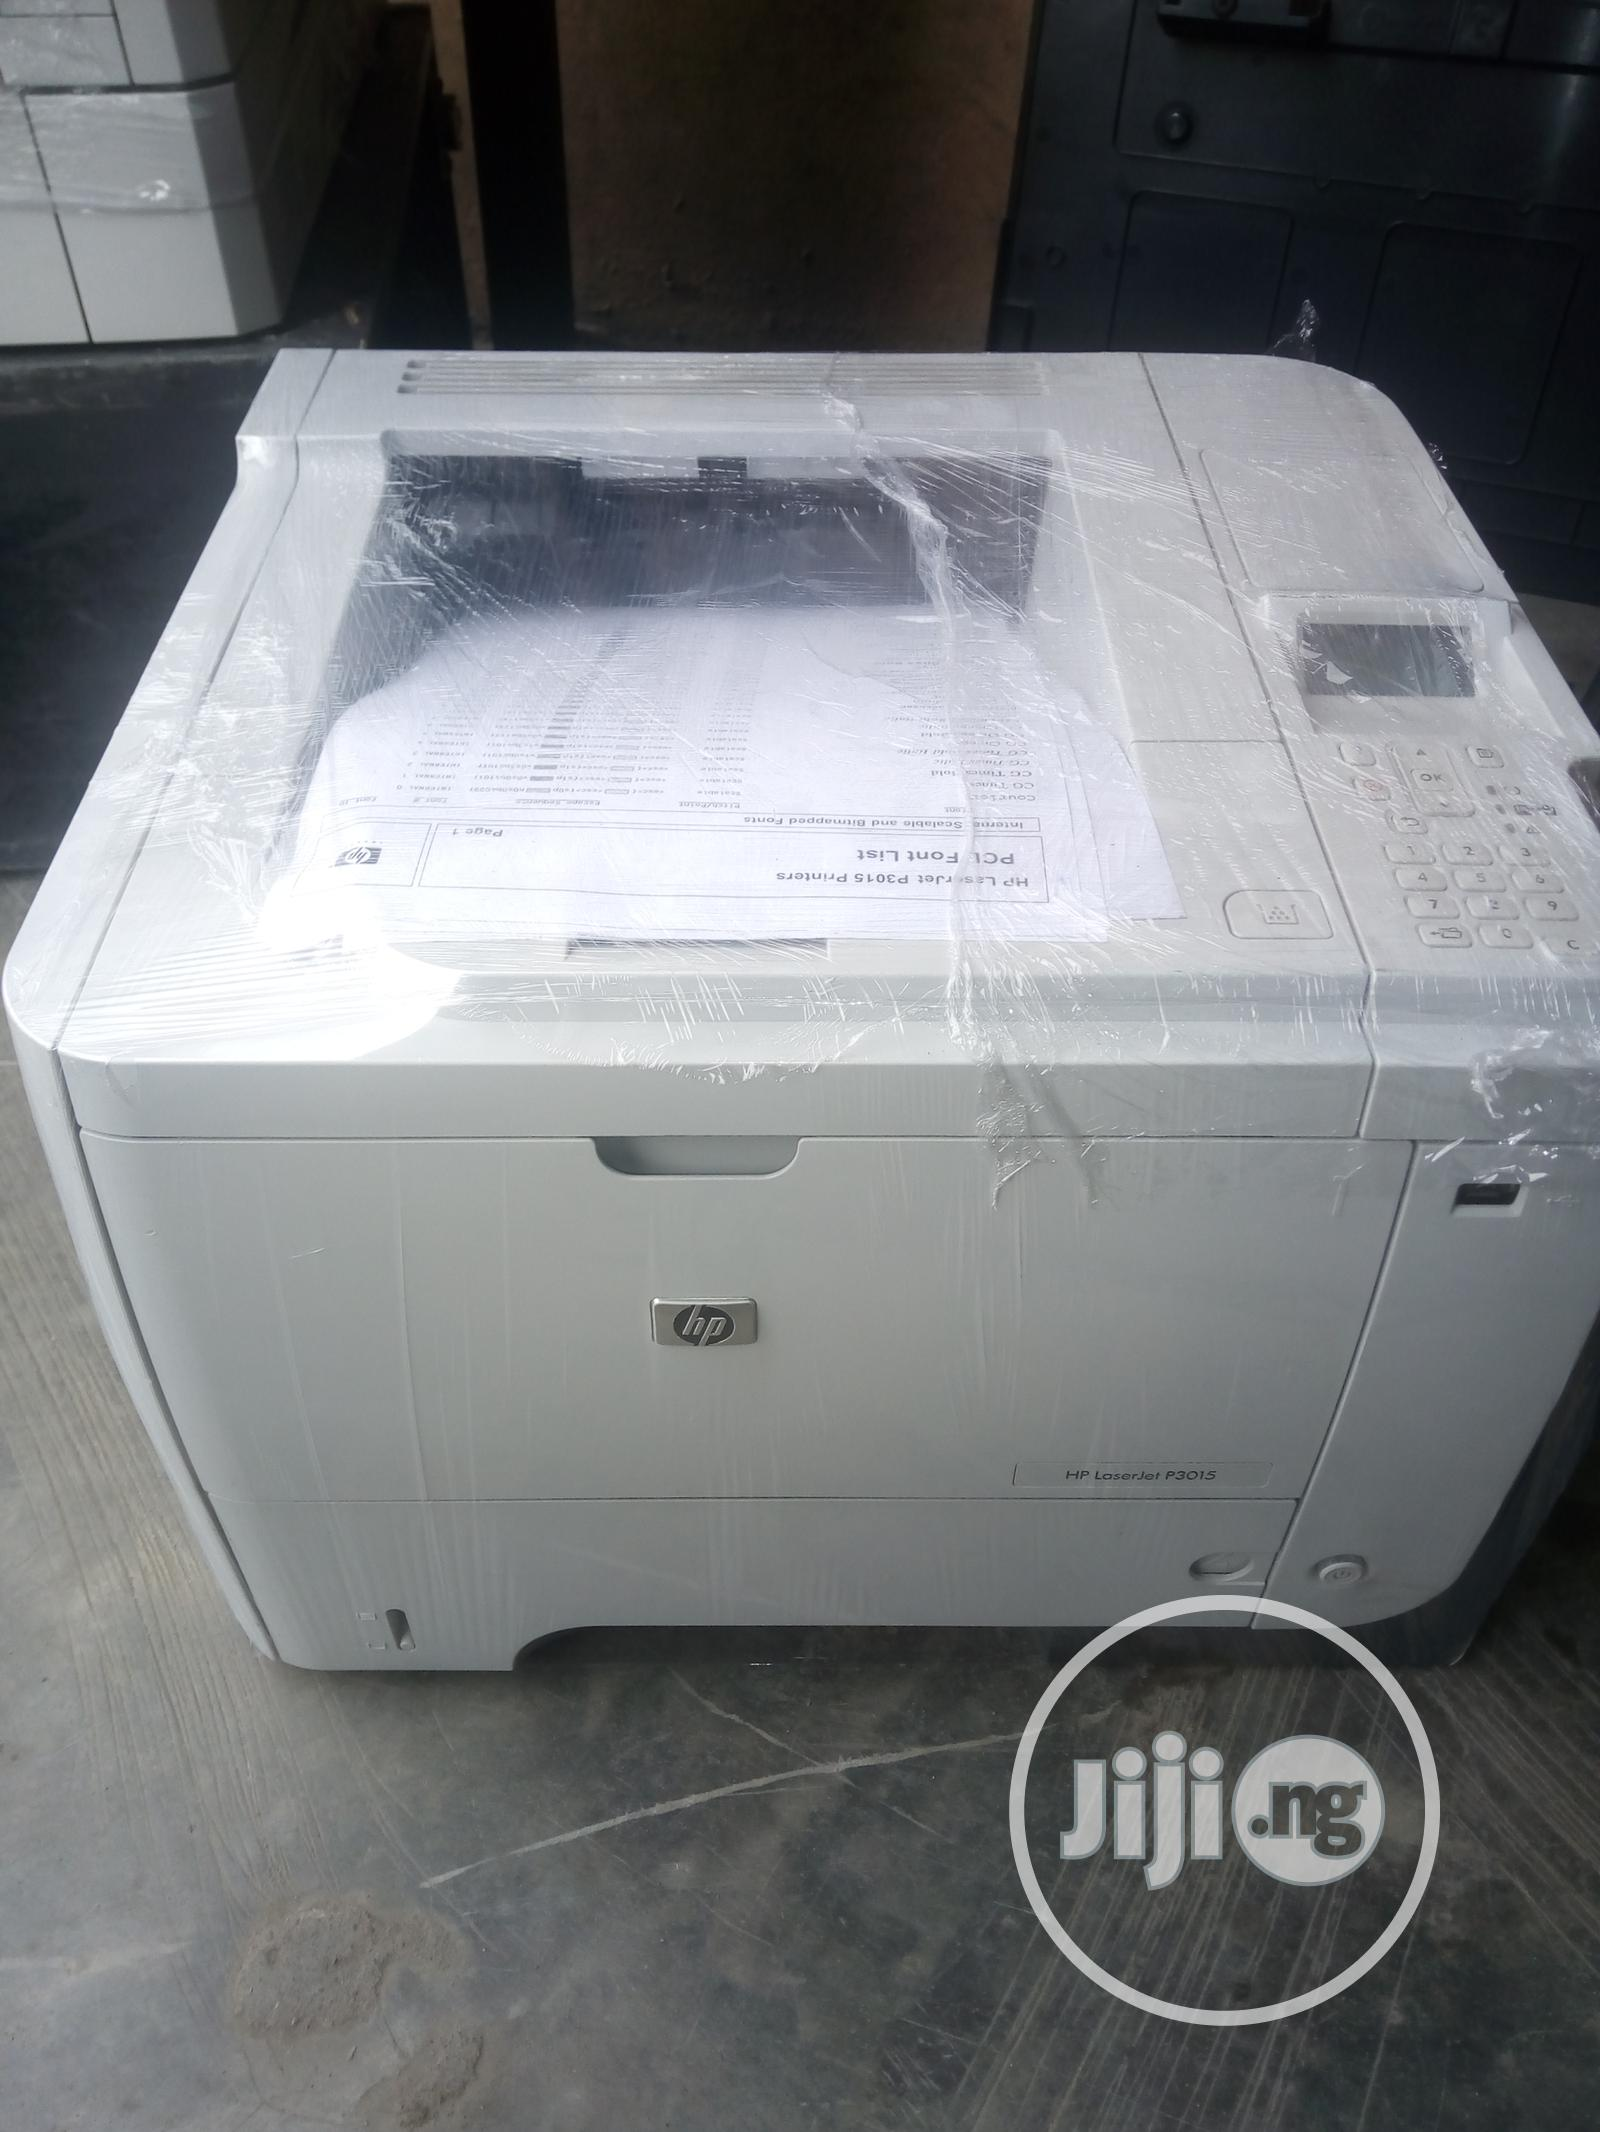 HP Laserjet P3015 Monochrome   Printers & Scanners for sale in Surulere, Lagos State, Nigeria